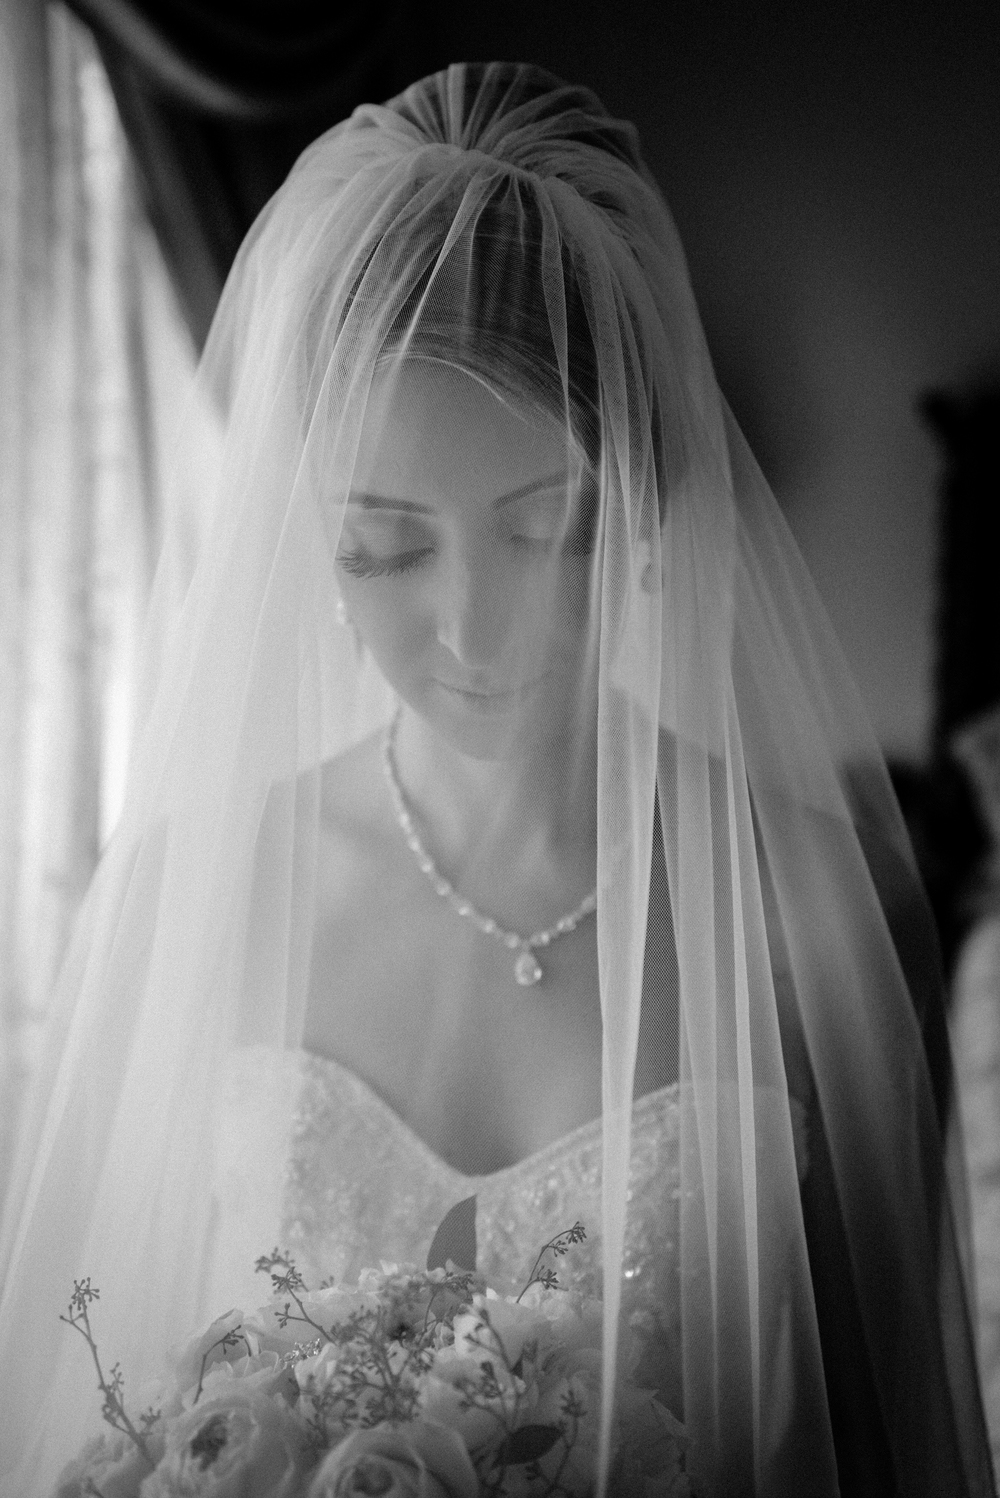 portrait of bride with veil by window